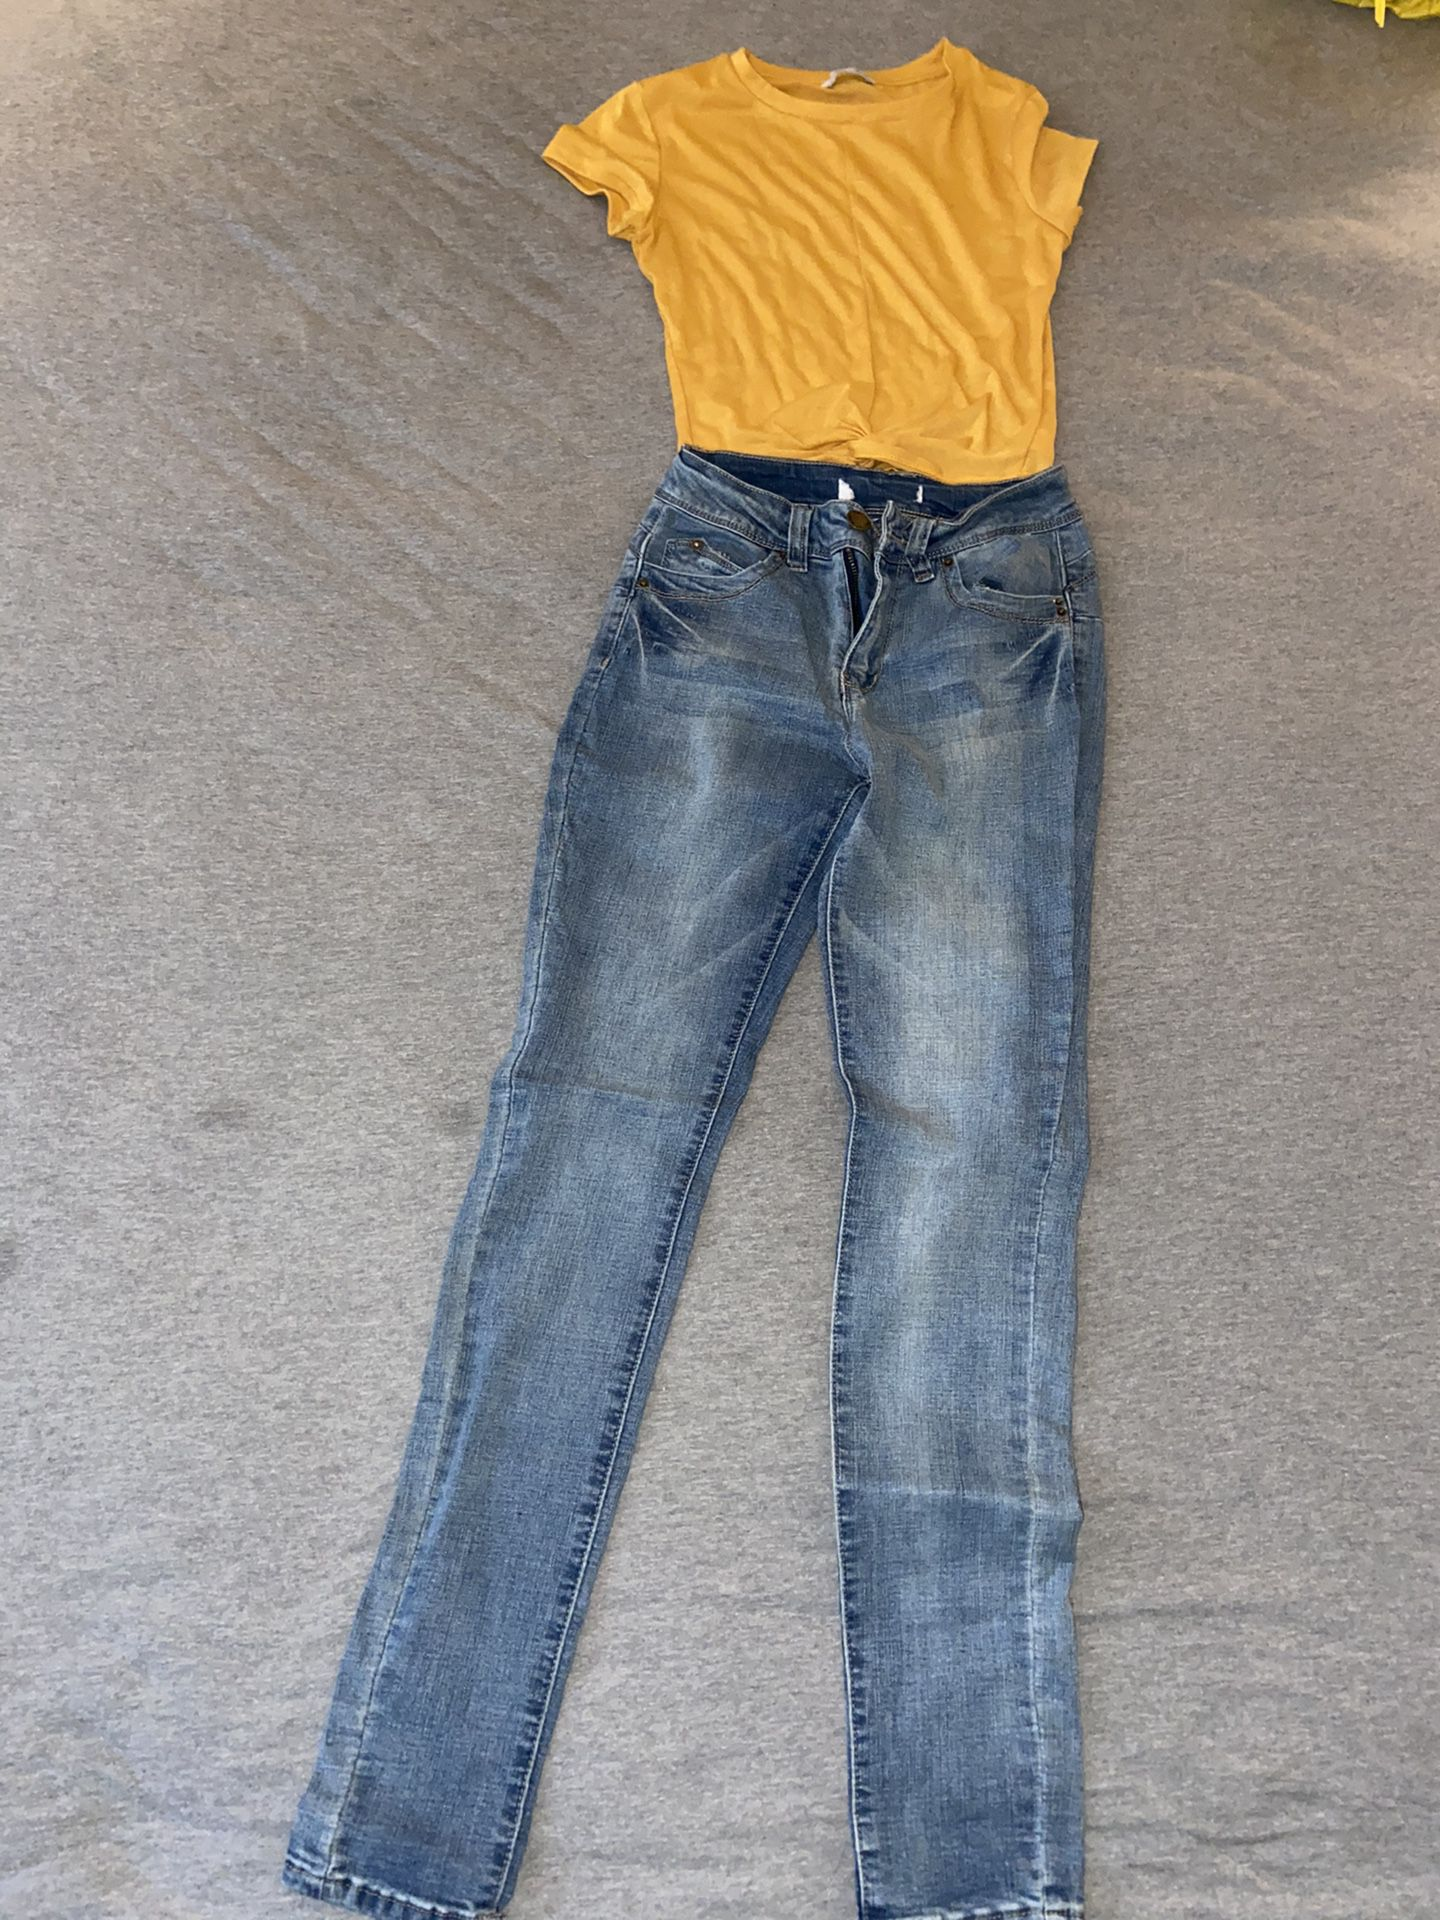 Yellow Crop Top And Light Blue Jeans